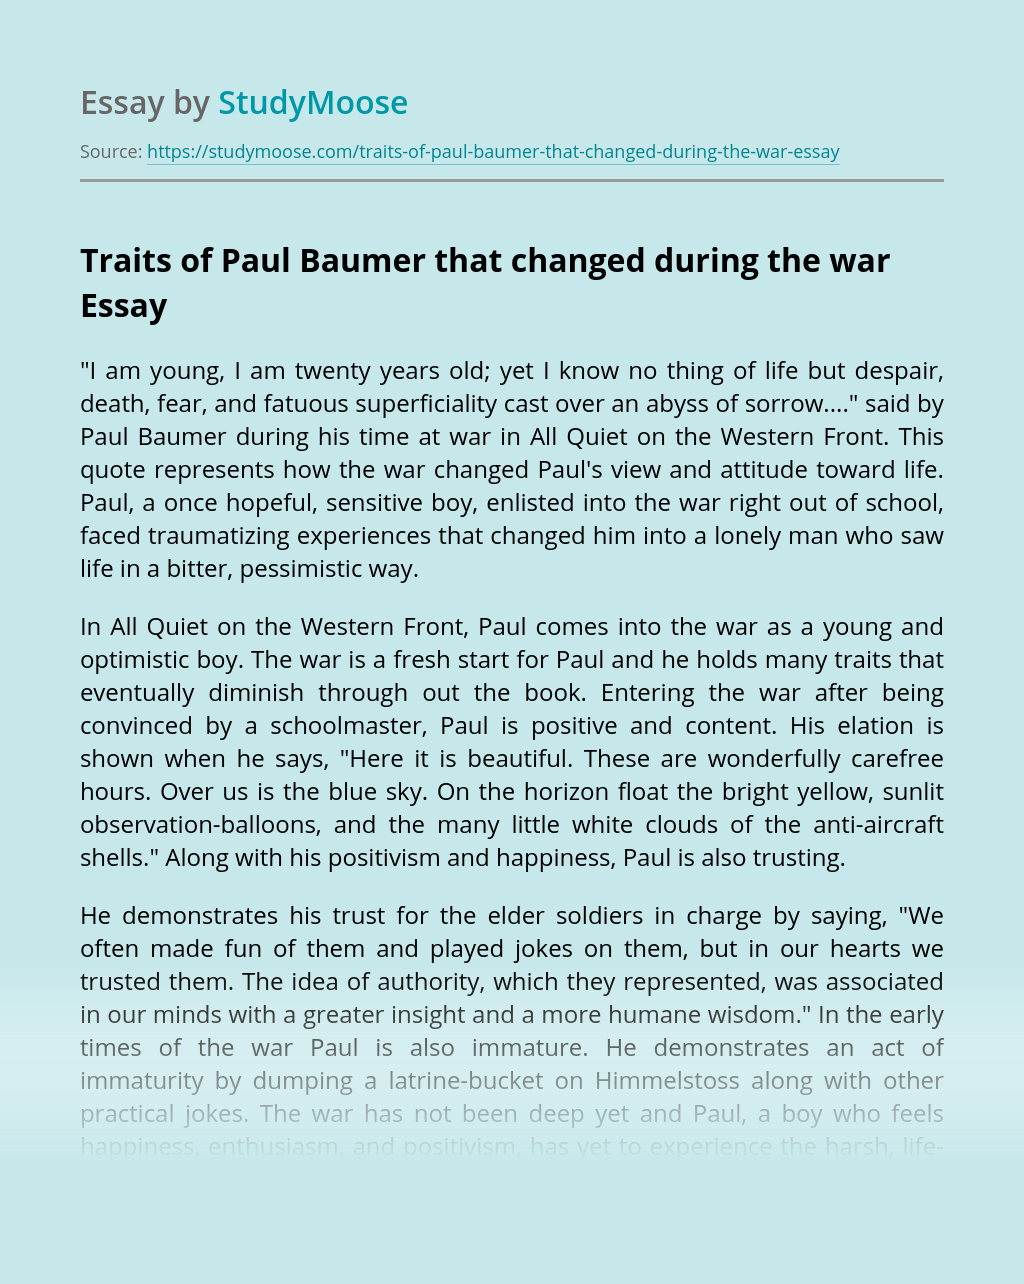 Traits of Paul Baumer that changed during the war